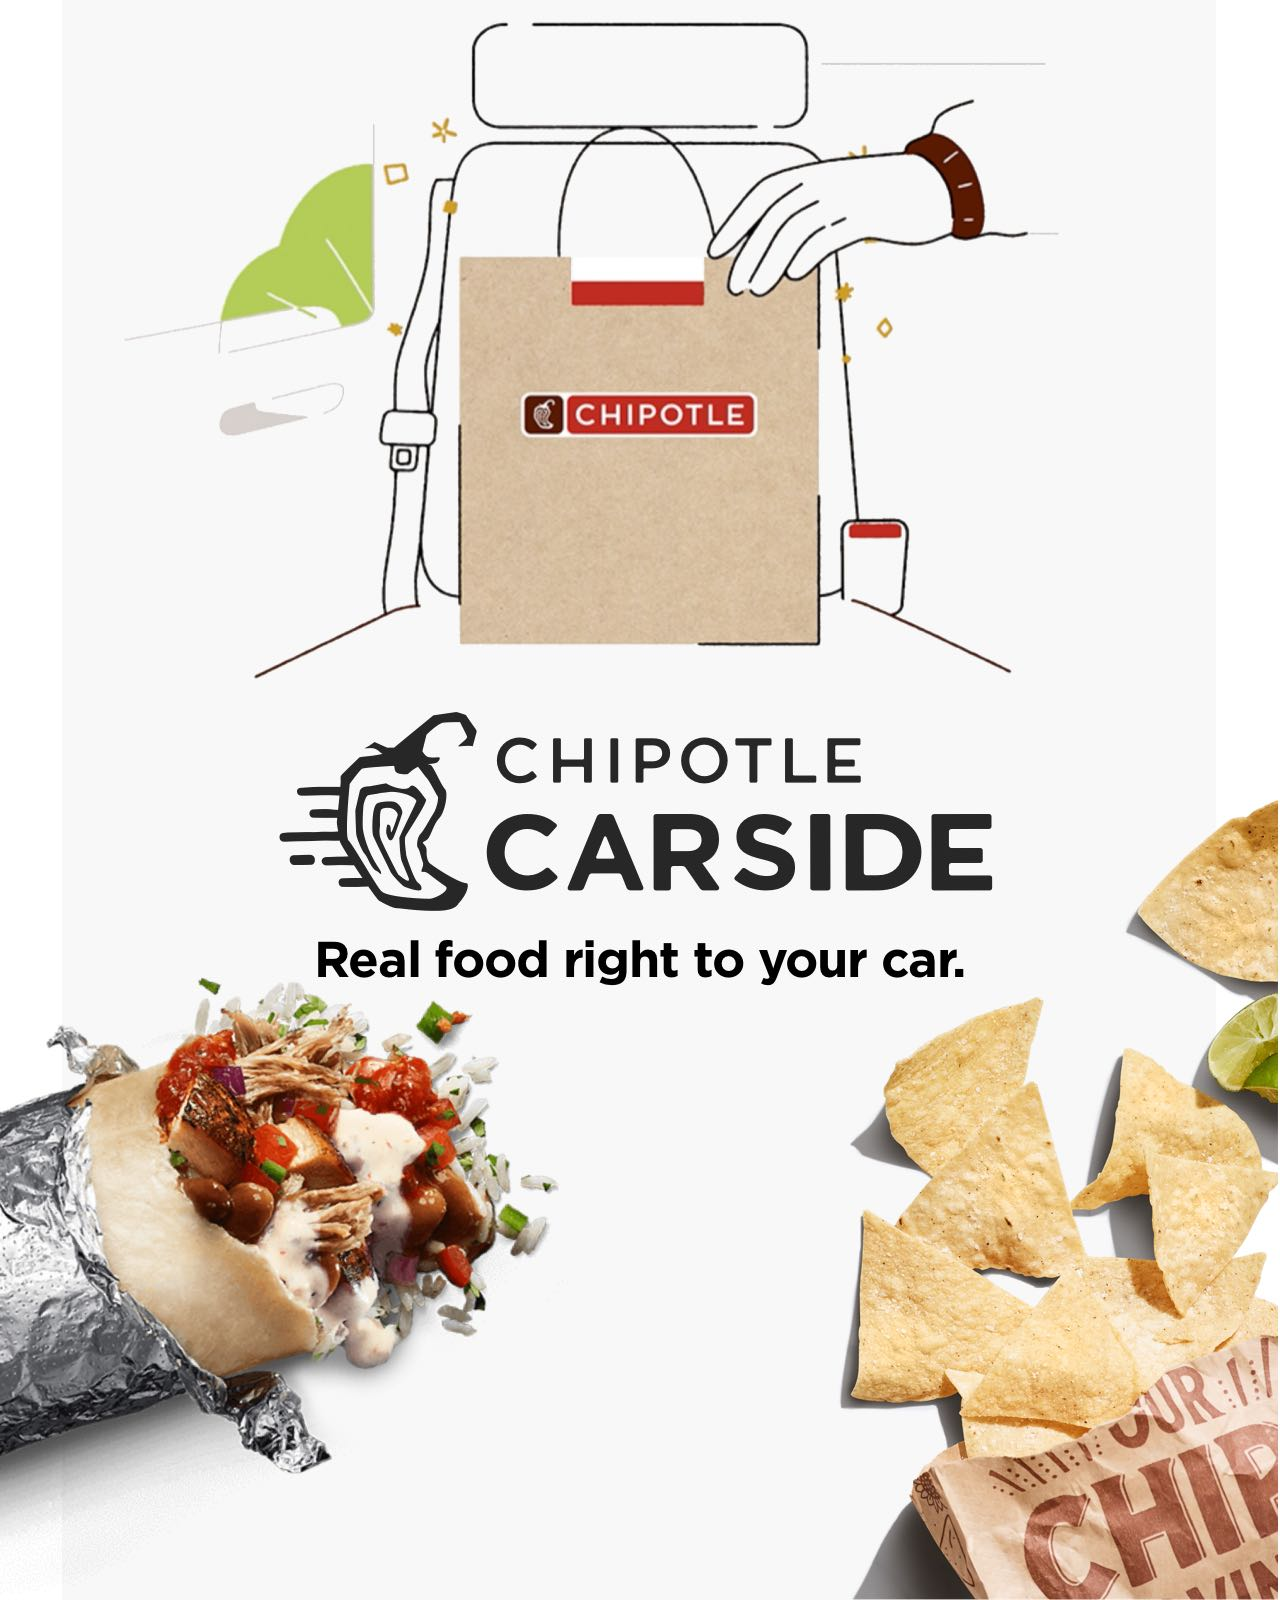 Chipotle Carside: Real food right to your car, now available in the Chipotle app. Download now to get started.